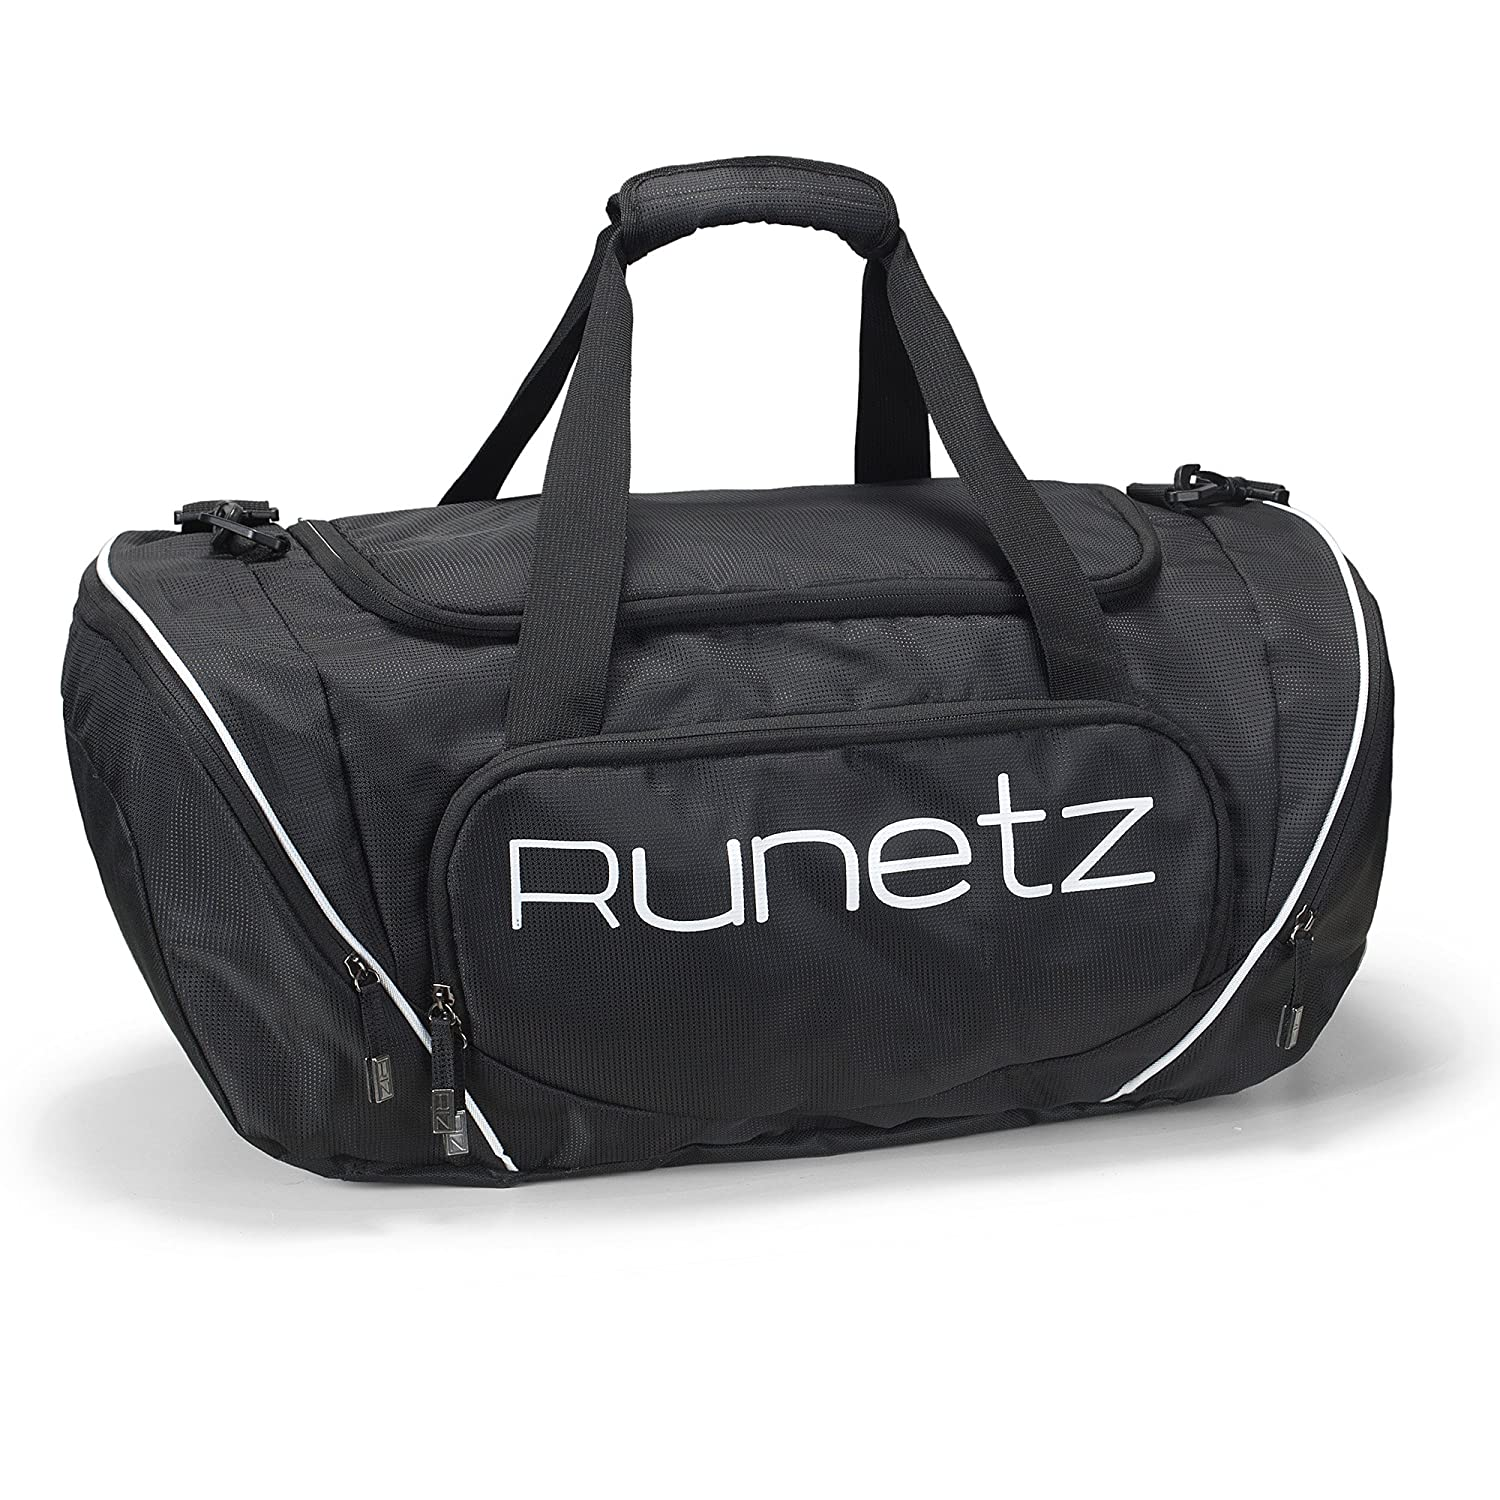 afbc2046af Amazon.com  Runetz - Gym Bag for Women and Men - Ideal Workout Overnight  Weekend Bag - Sport Duffle Bag - Large Size